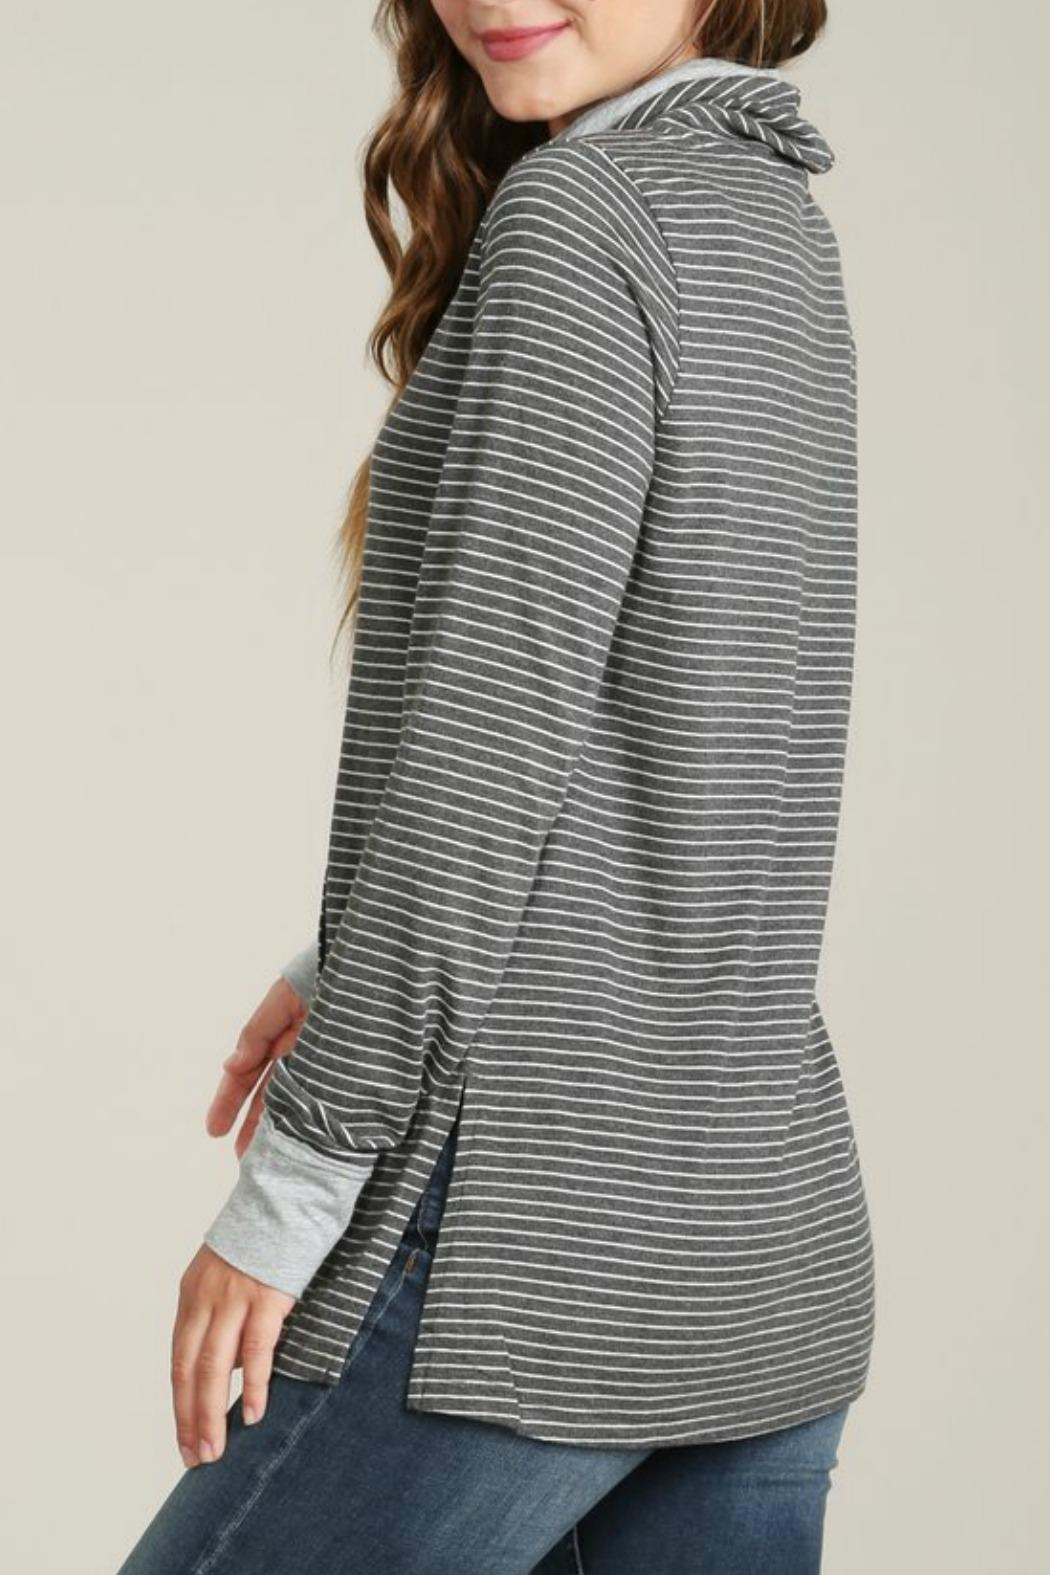 Mod-o-doc Cowl Neck Pullover Top - Side Cropped Image